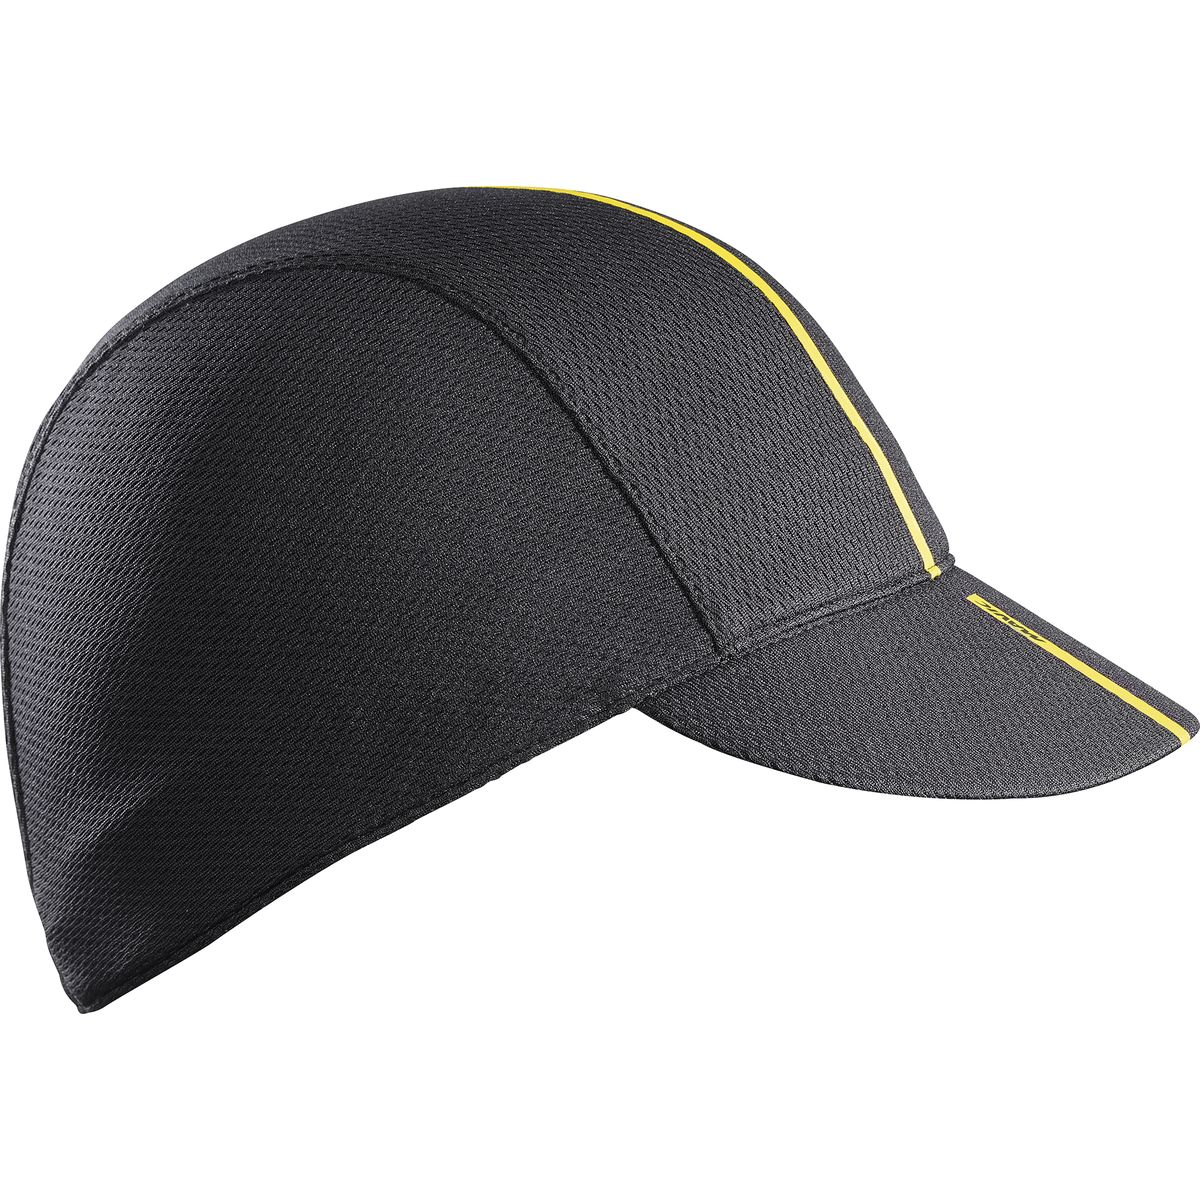 MAVIC ROADIE CAP under helmet cap | Headwear